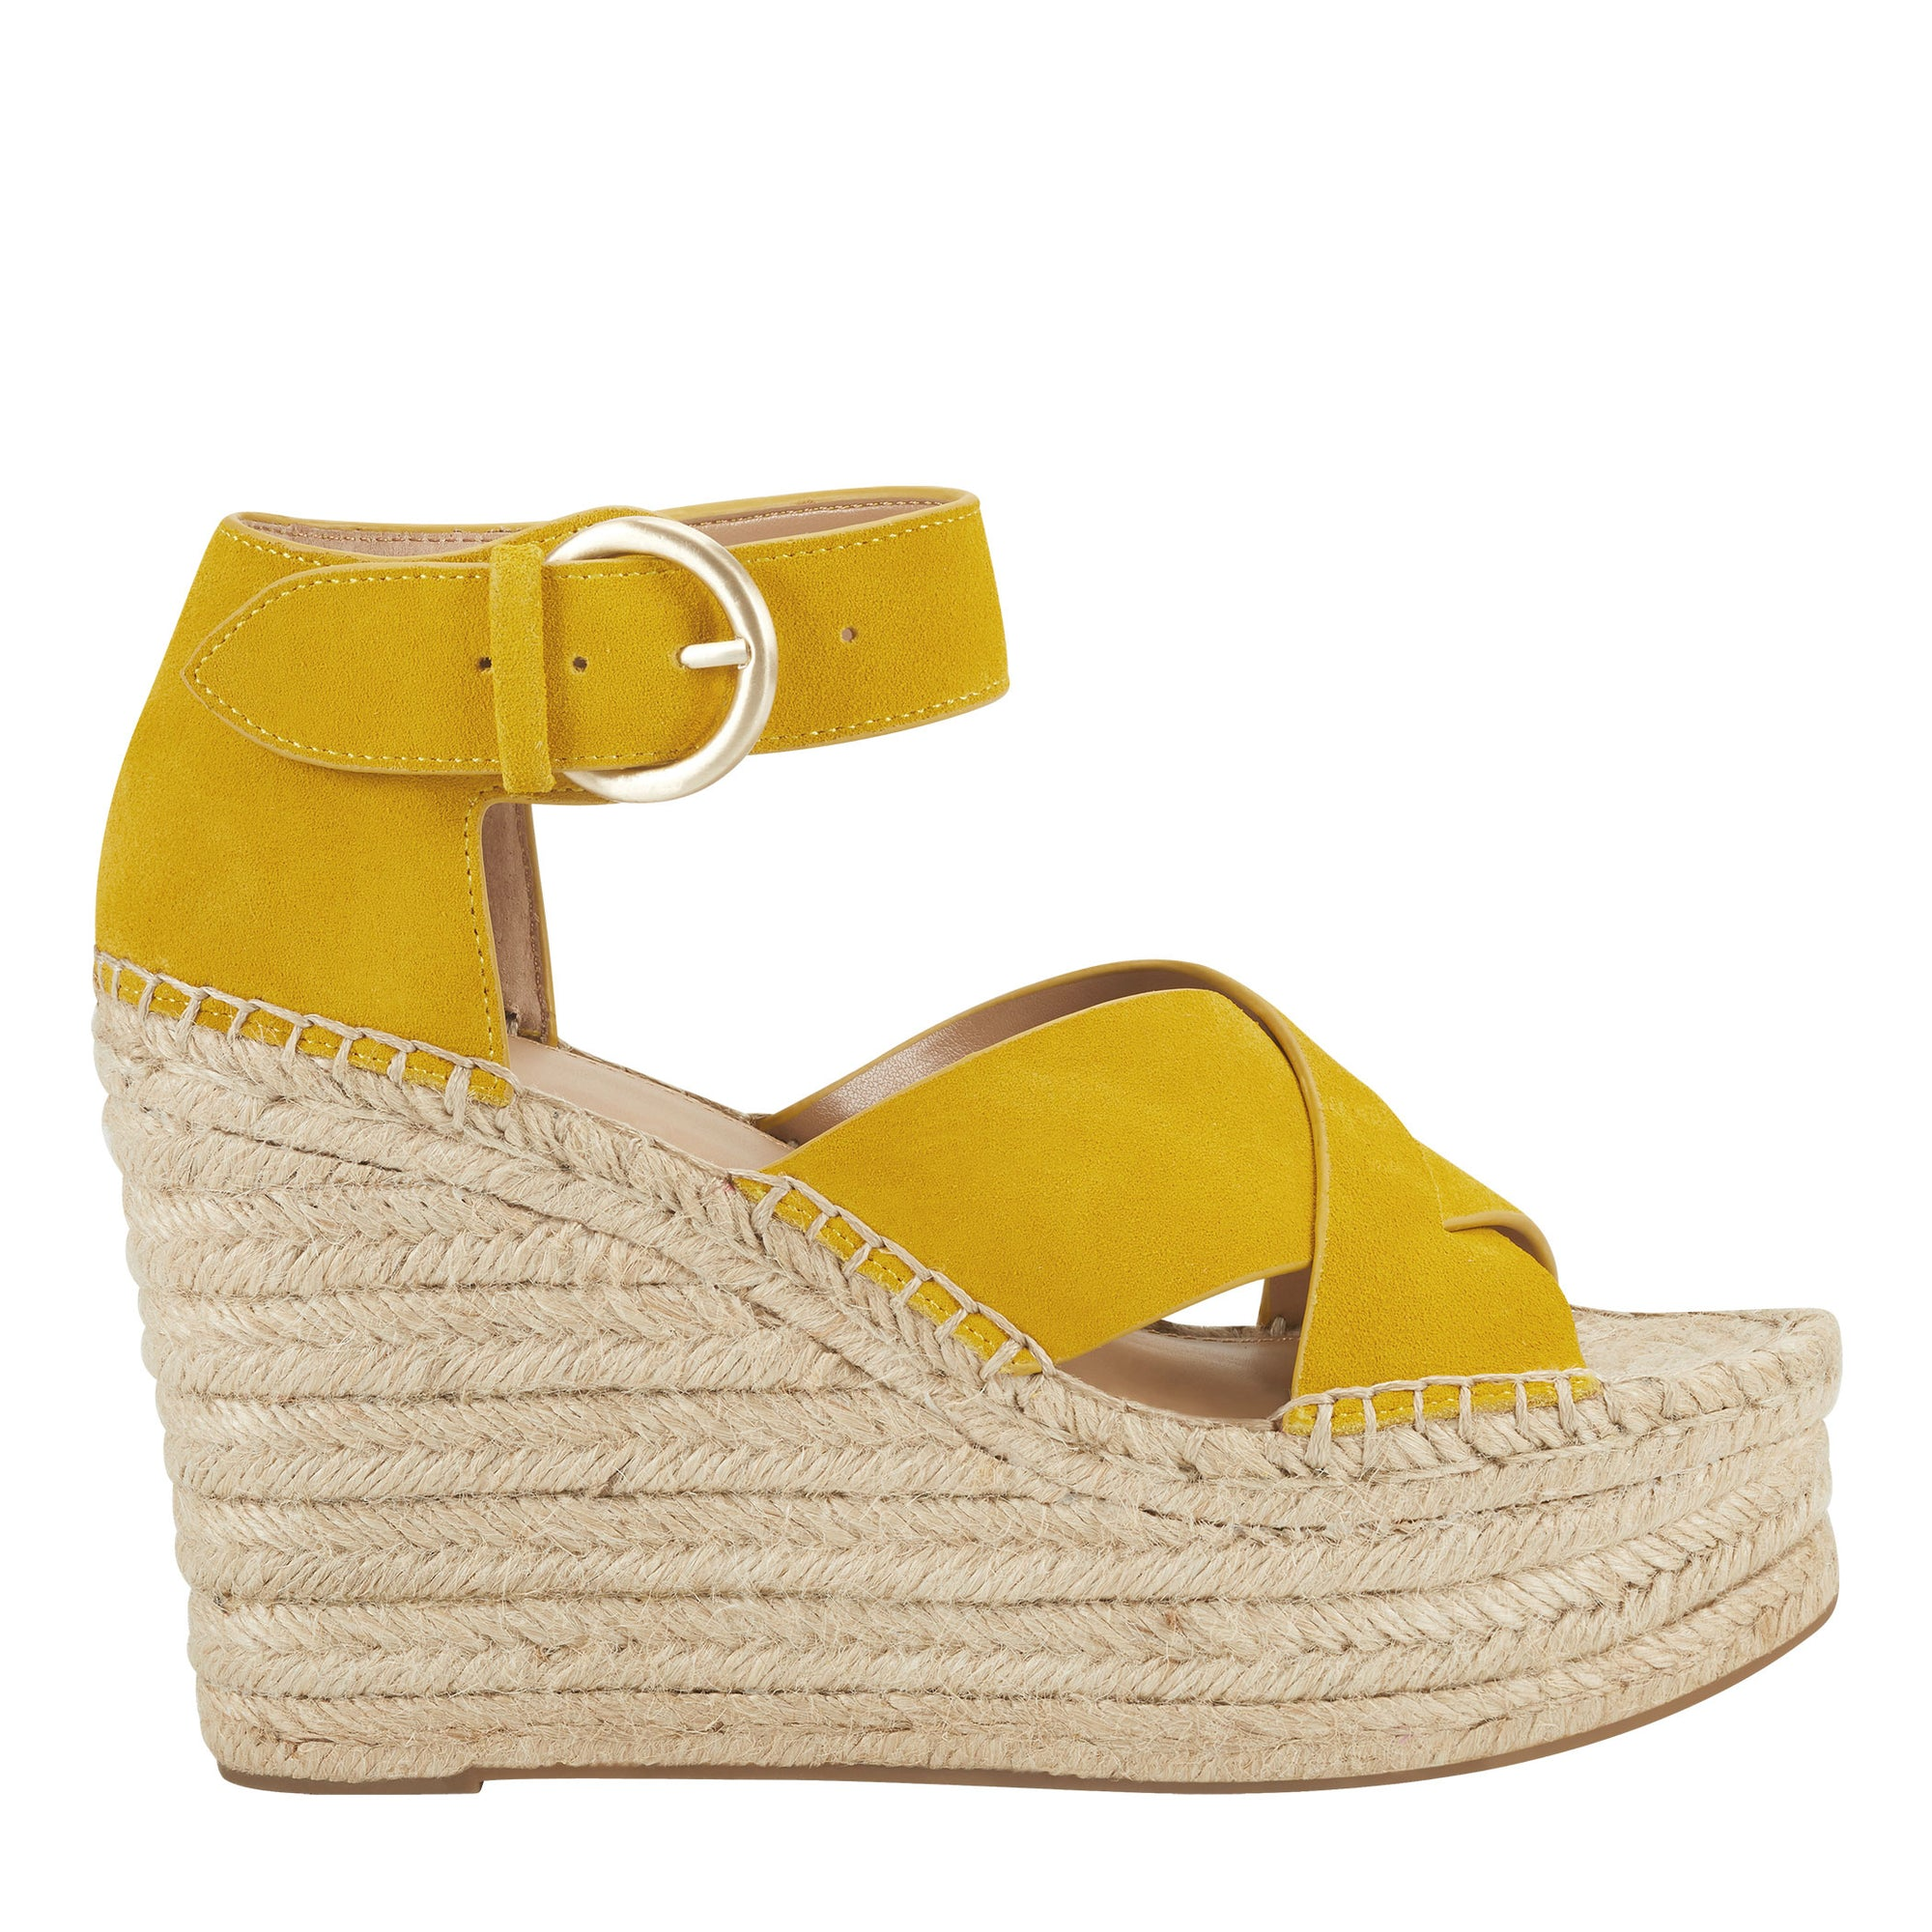 amari-espadrille-wedge-sandal-in-yellow-suede